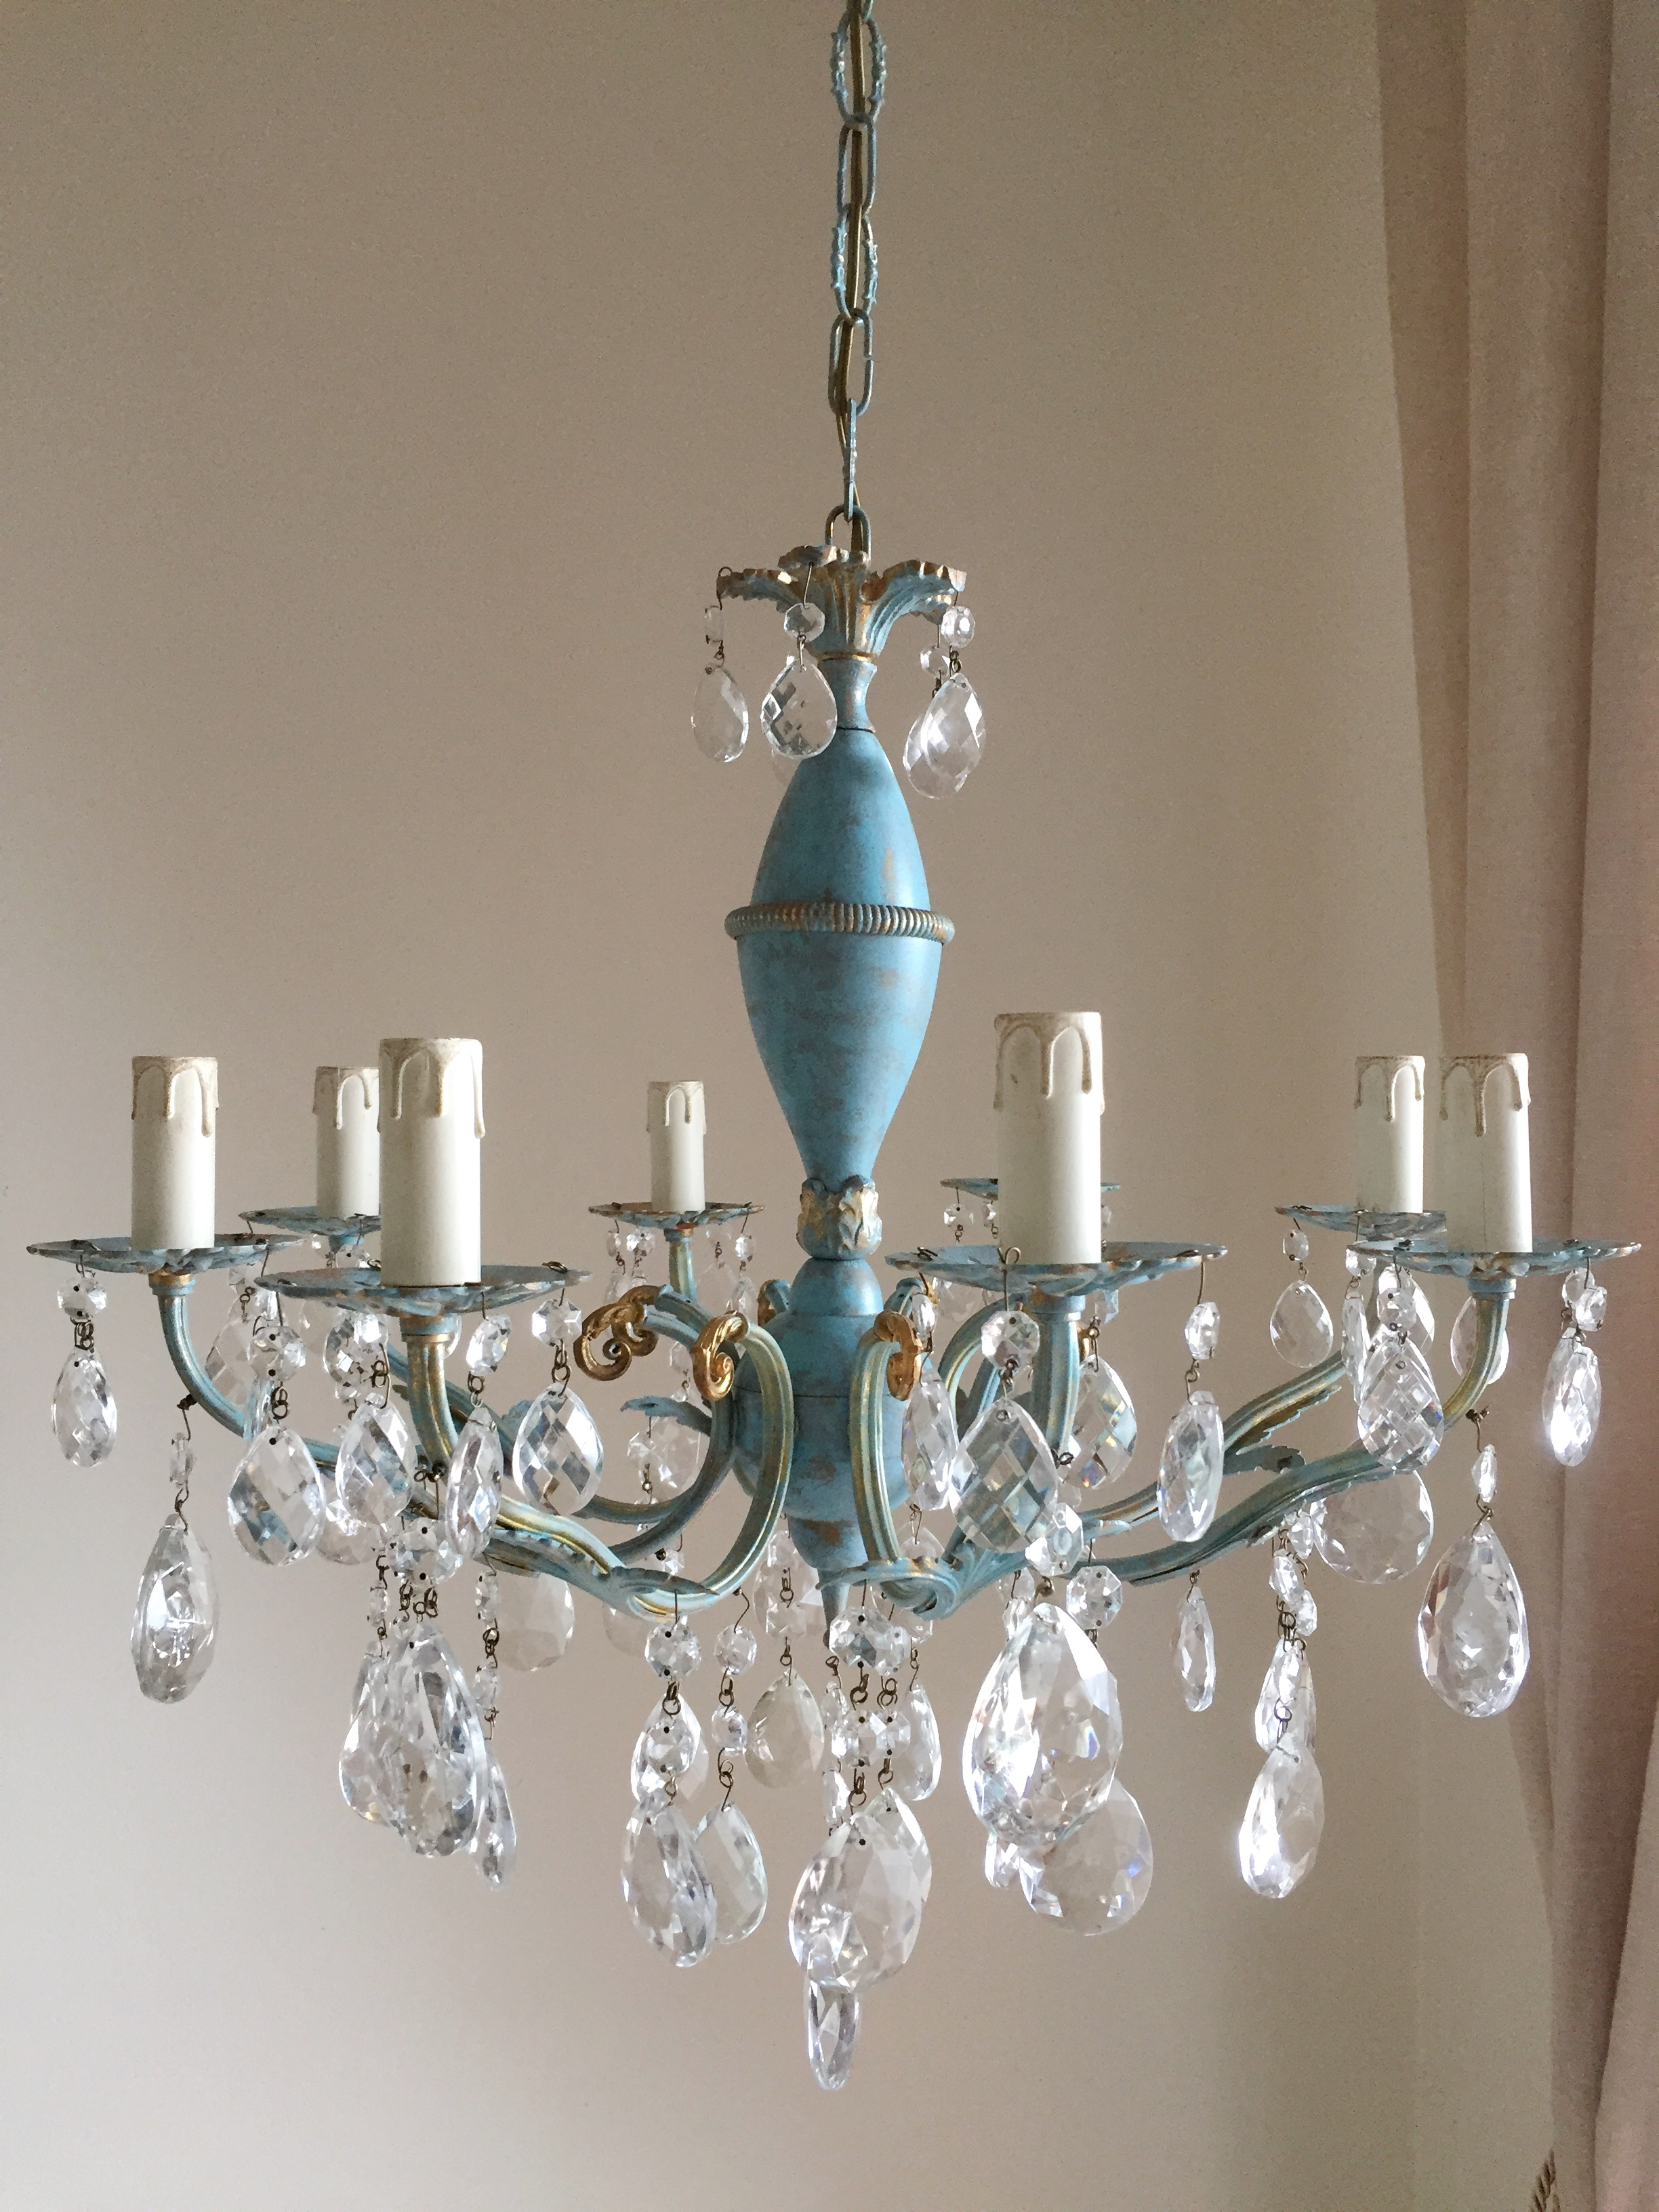 Robins egg blue and gold chandelier